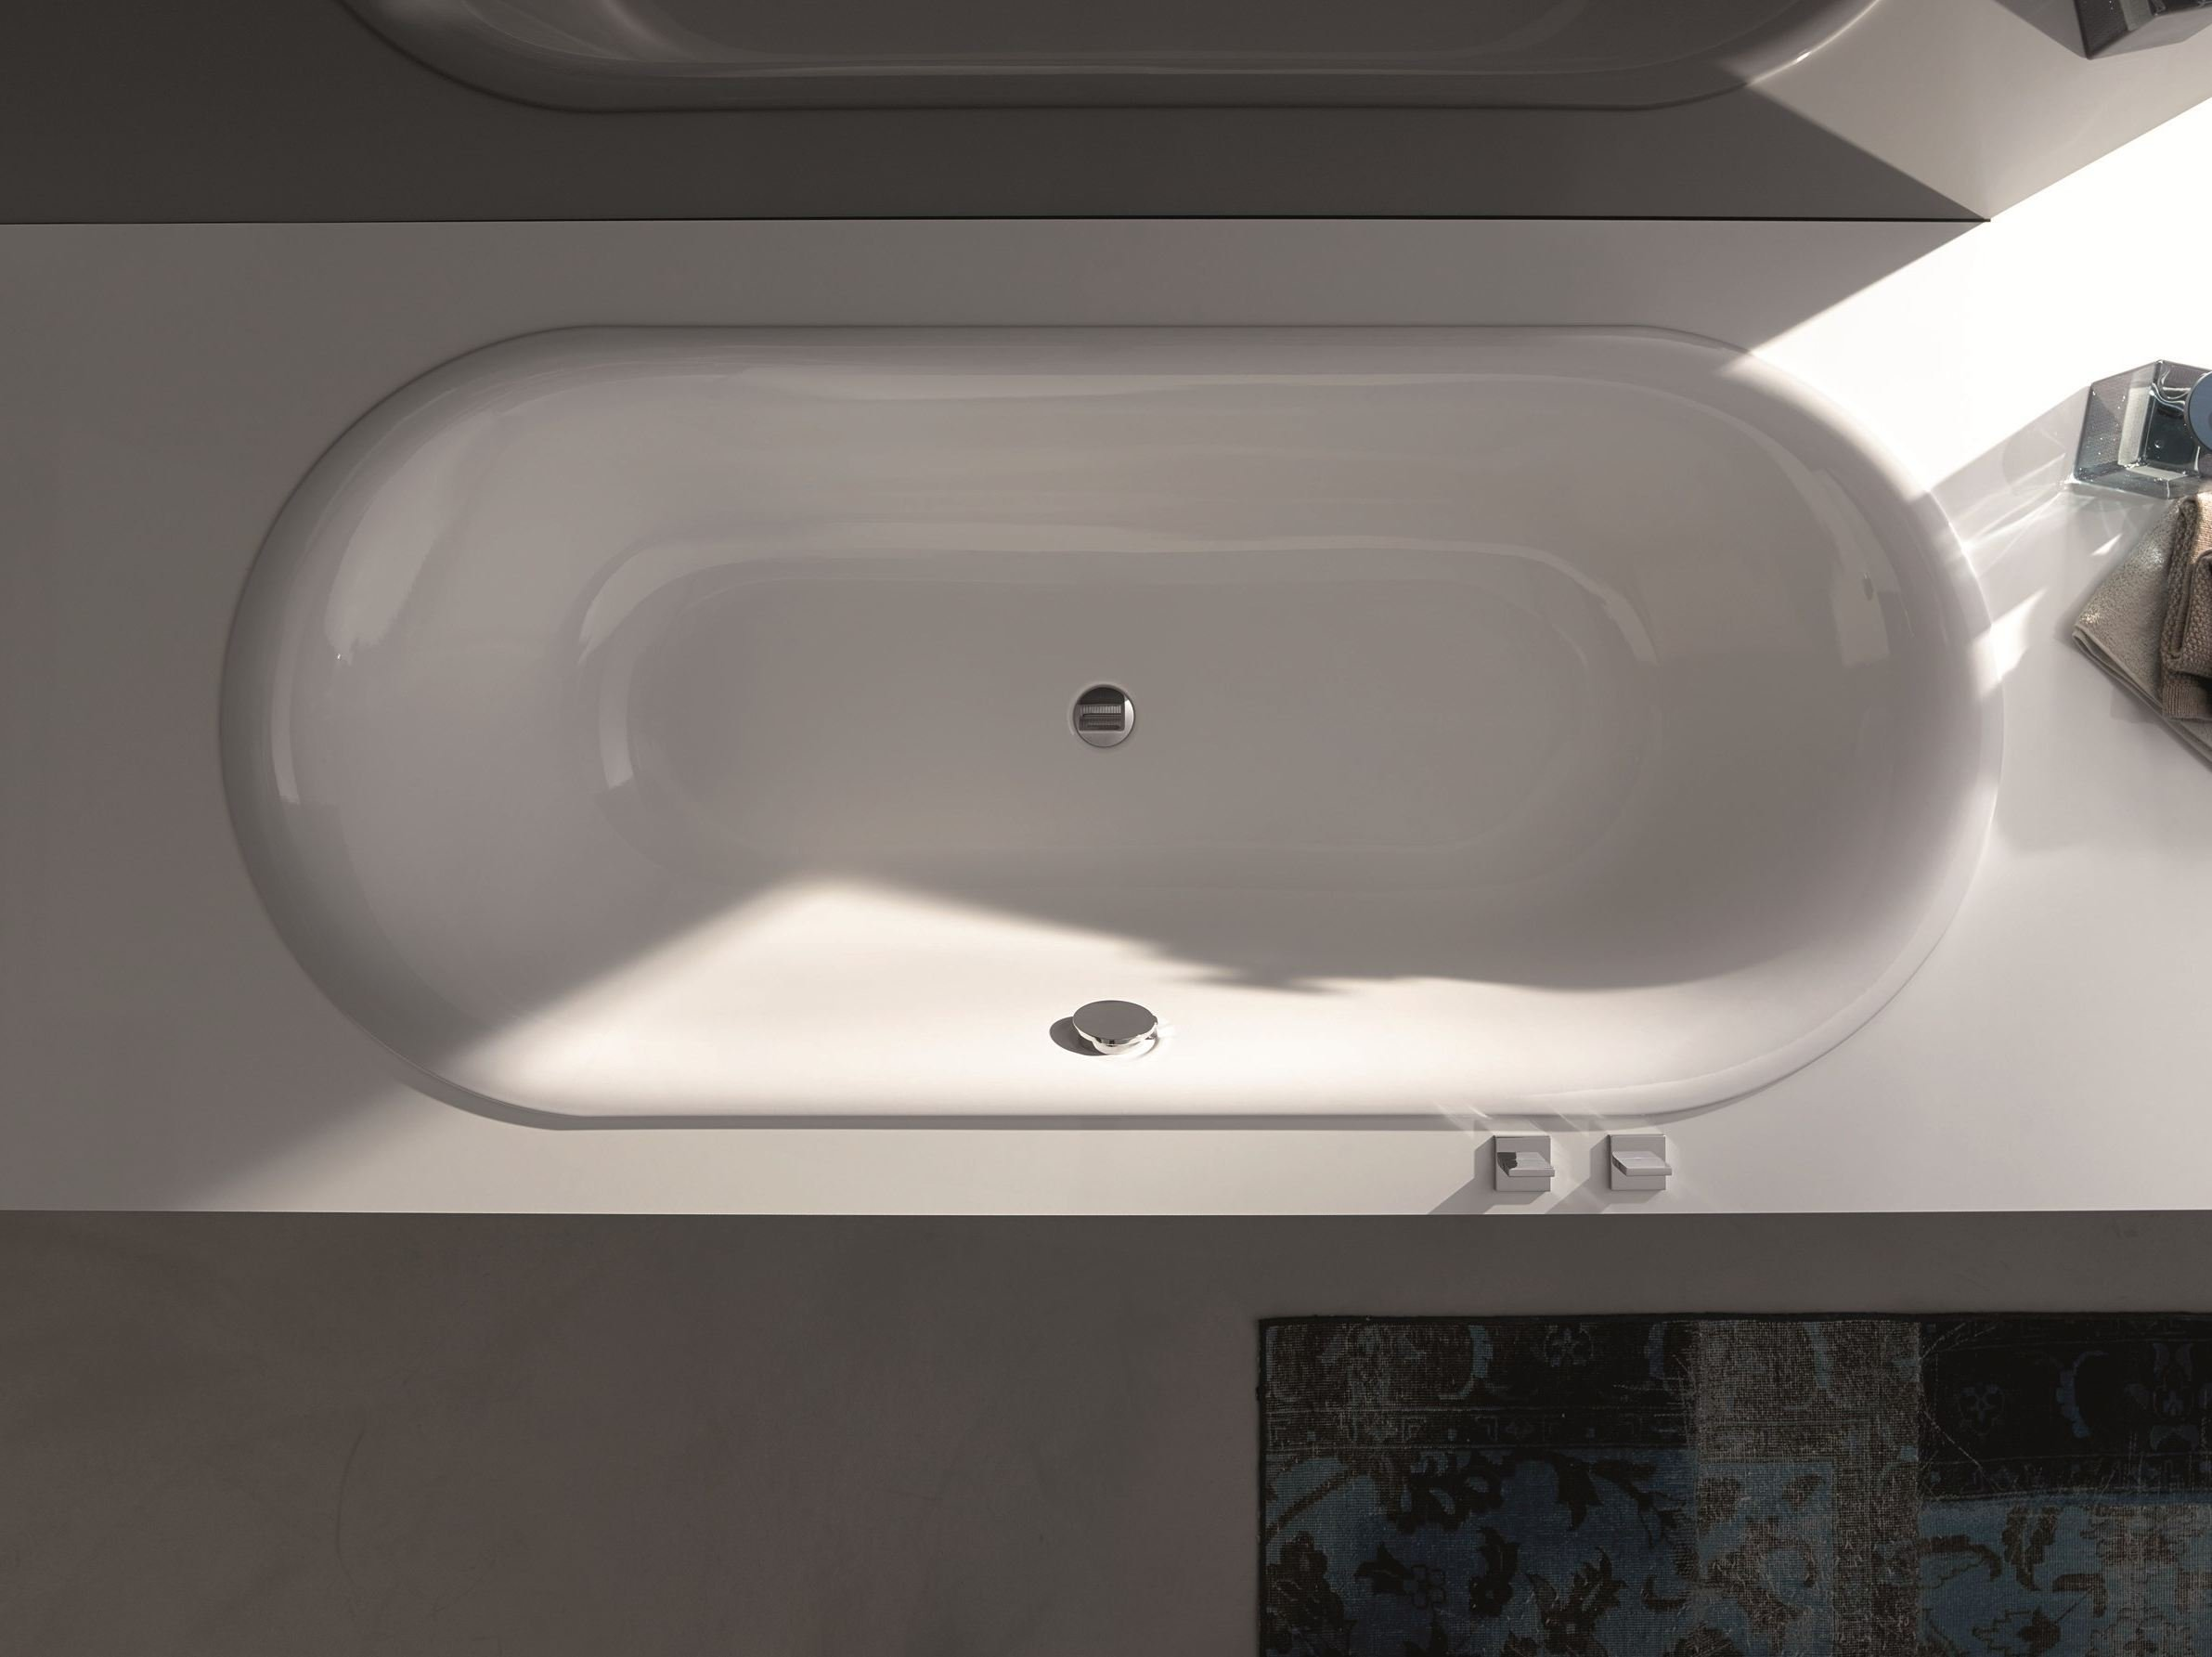 Baignoire ovale encastrable bettelux oval by bette design for Baignoire non encastrable